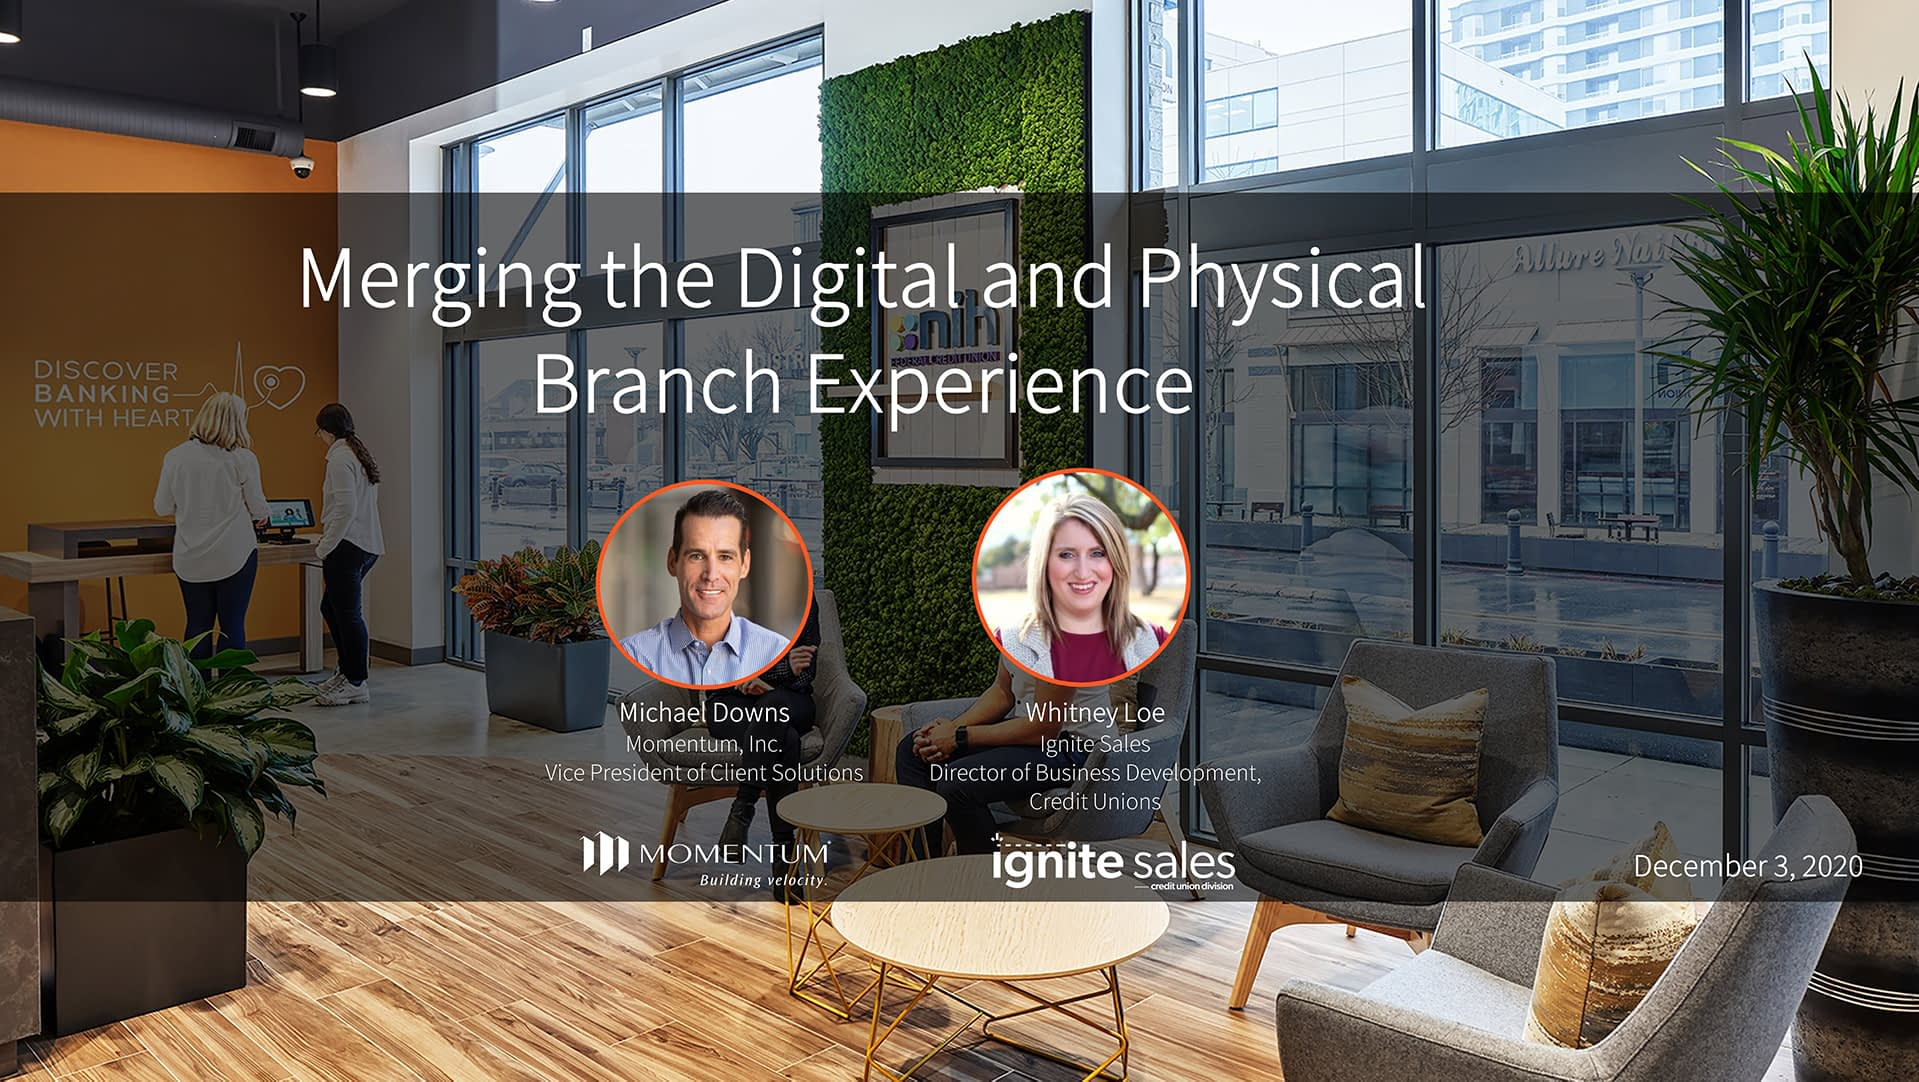 Merging the Digital and Physical Branch Experience